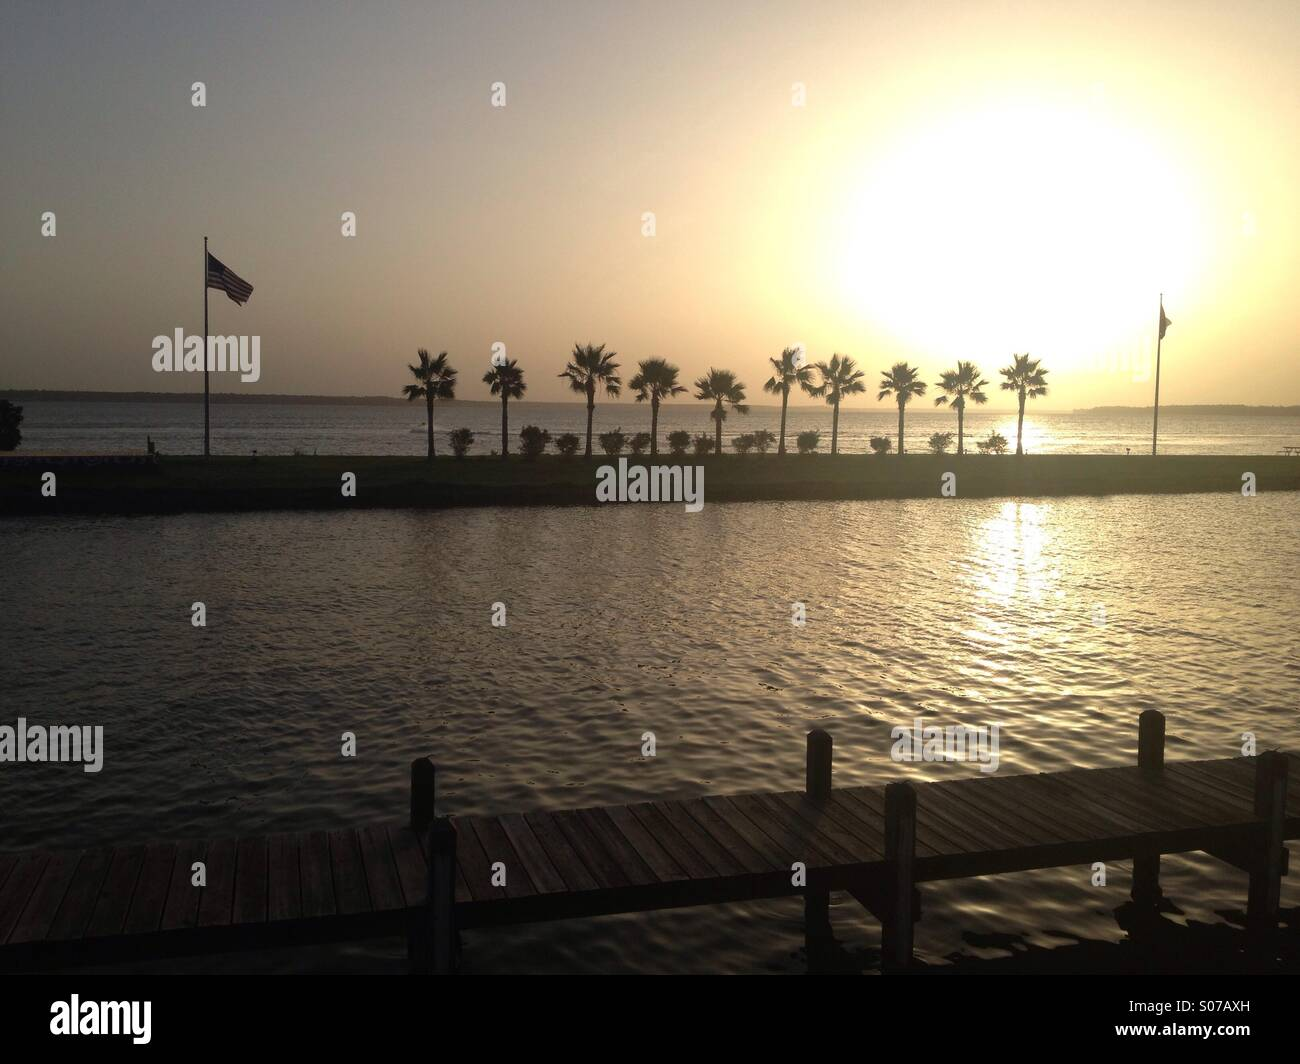 Sunset on Lake Livingston, Texas with silhouetted palm trees & flags - Stock Image